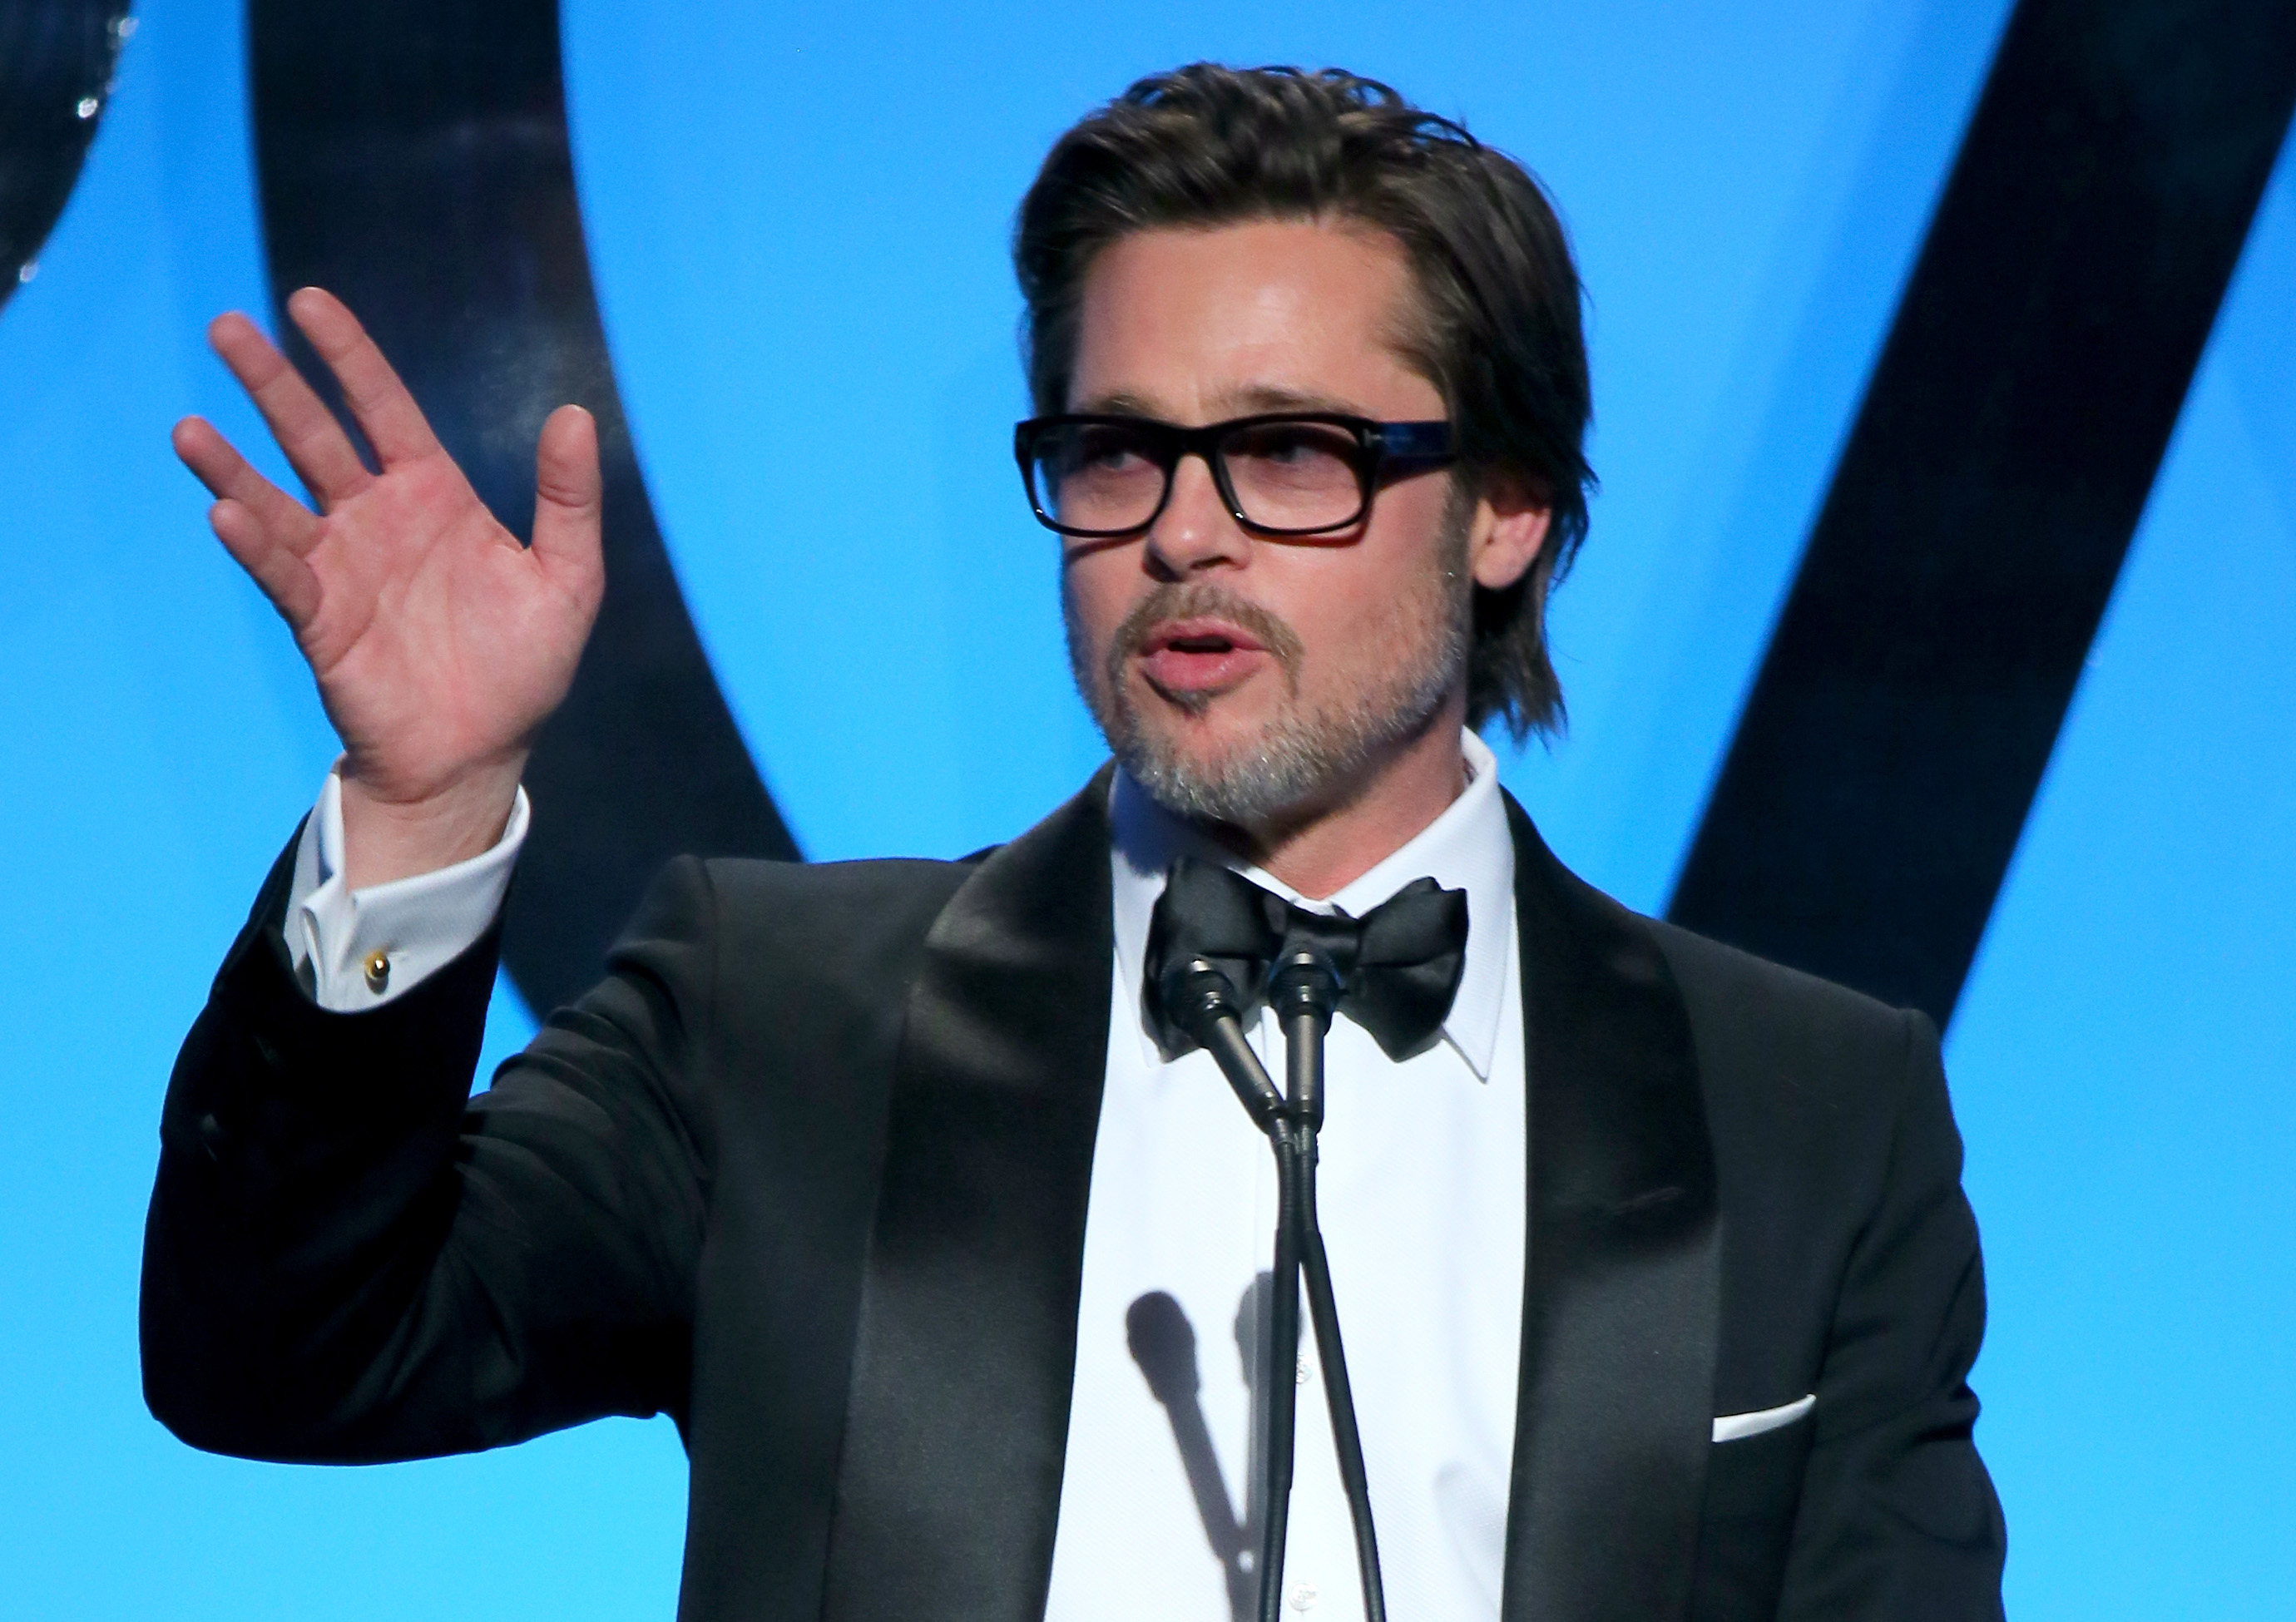 onstage during the 26th Annual Producers Guild Of America Awards at the Hyatt Regency Century Plaza on January 24, 2015 in Los Angeles, California.